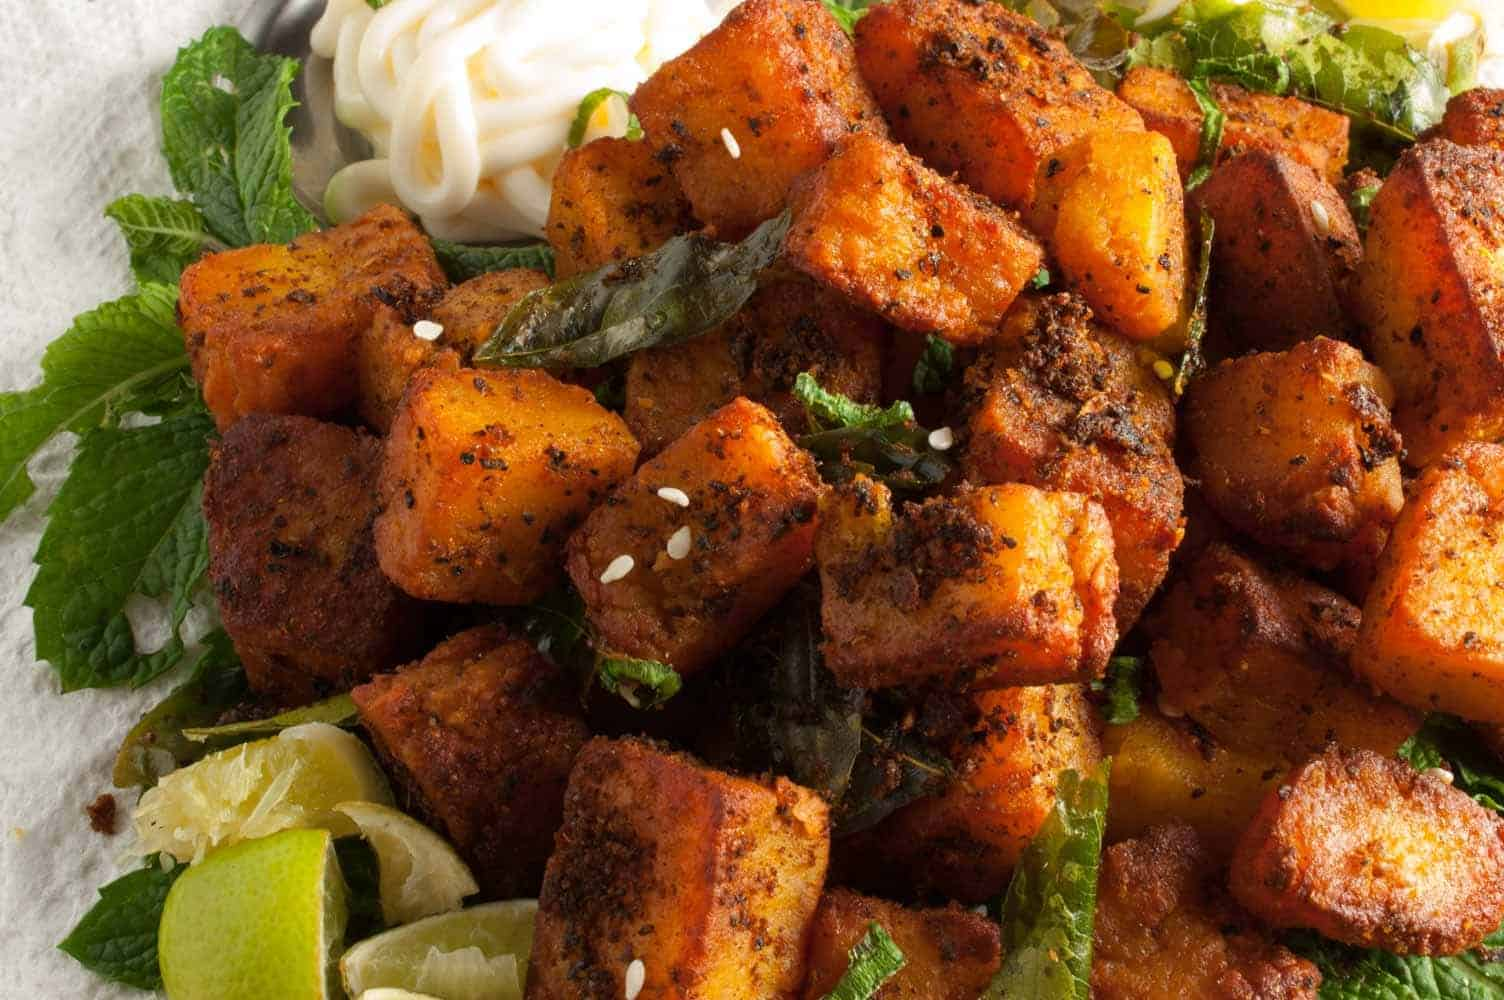 Paneer Masala Fry (Indian Cottage cheese fry)